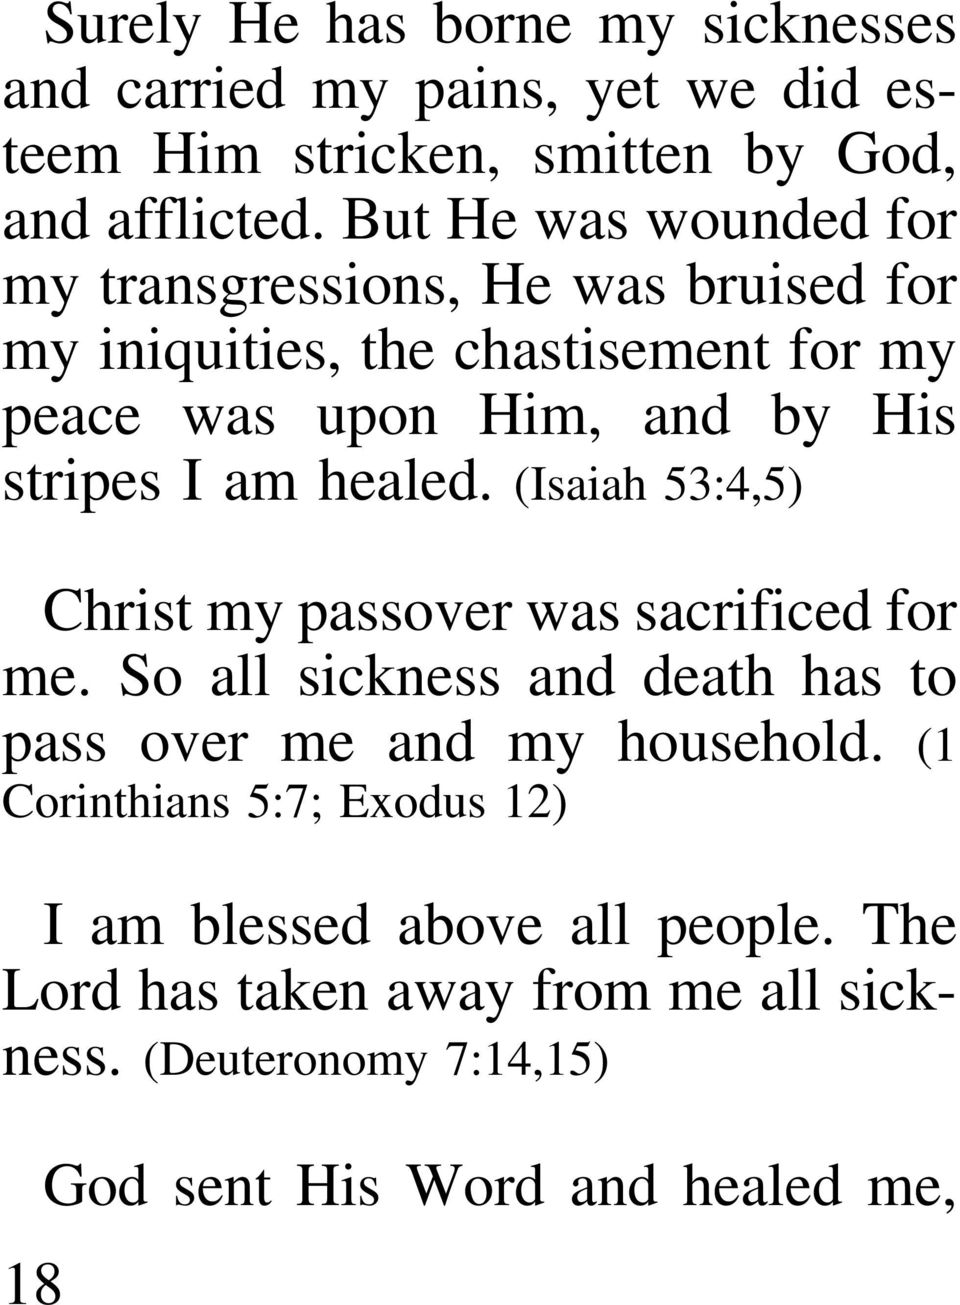 I am healed. (Isaiah 53:4,5) Christ my passover was sacrificed for me. So all sickness and death has to pass over me and my household.